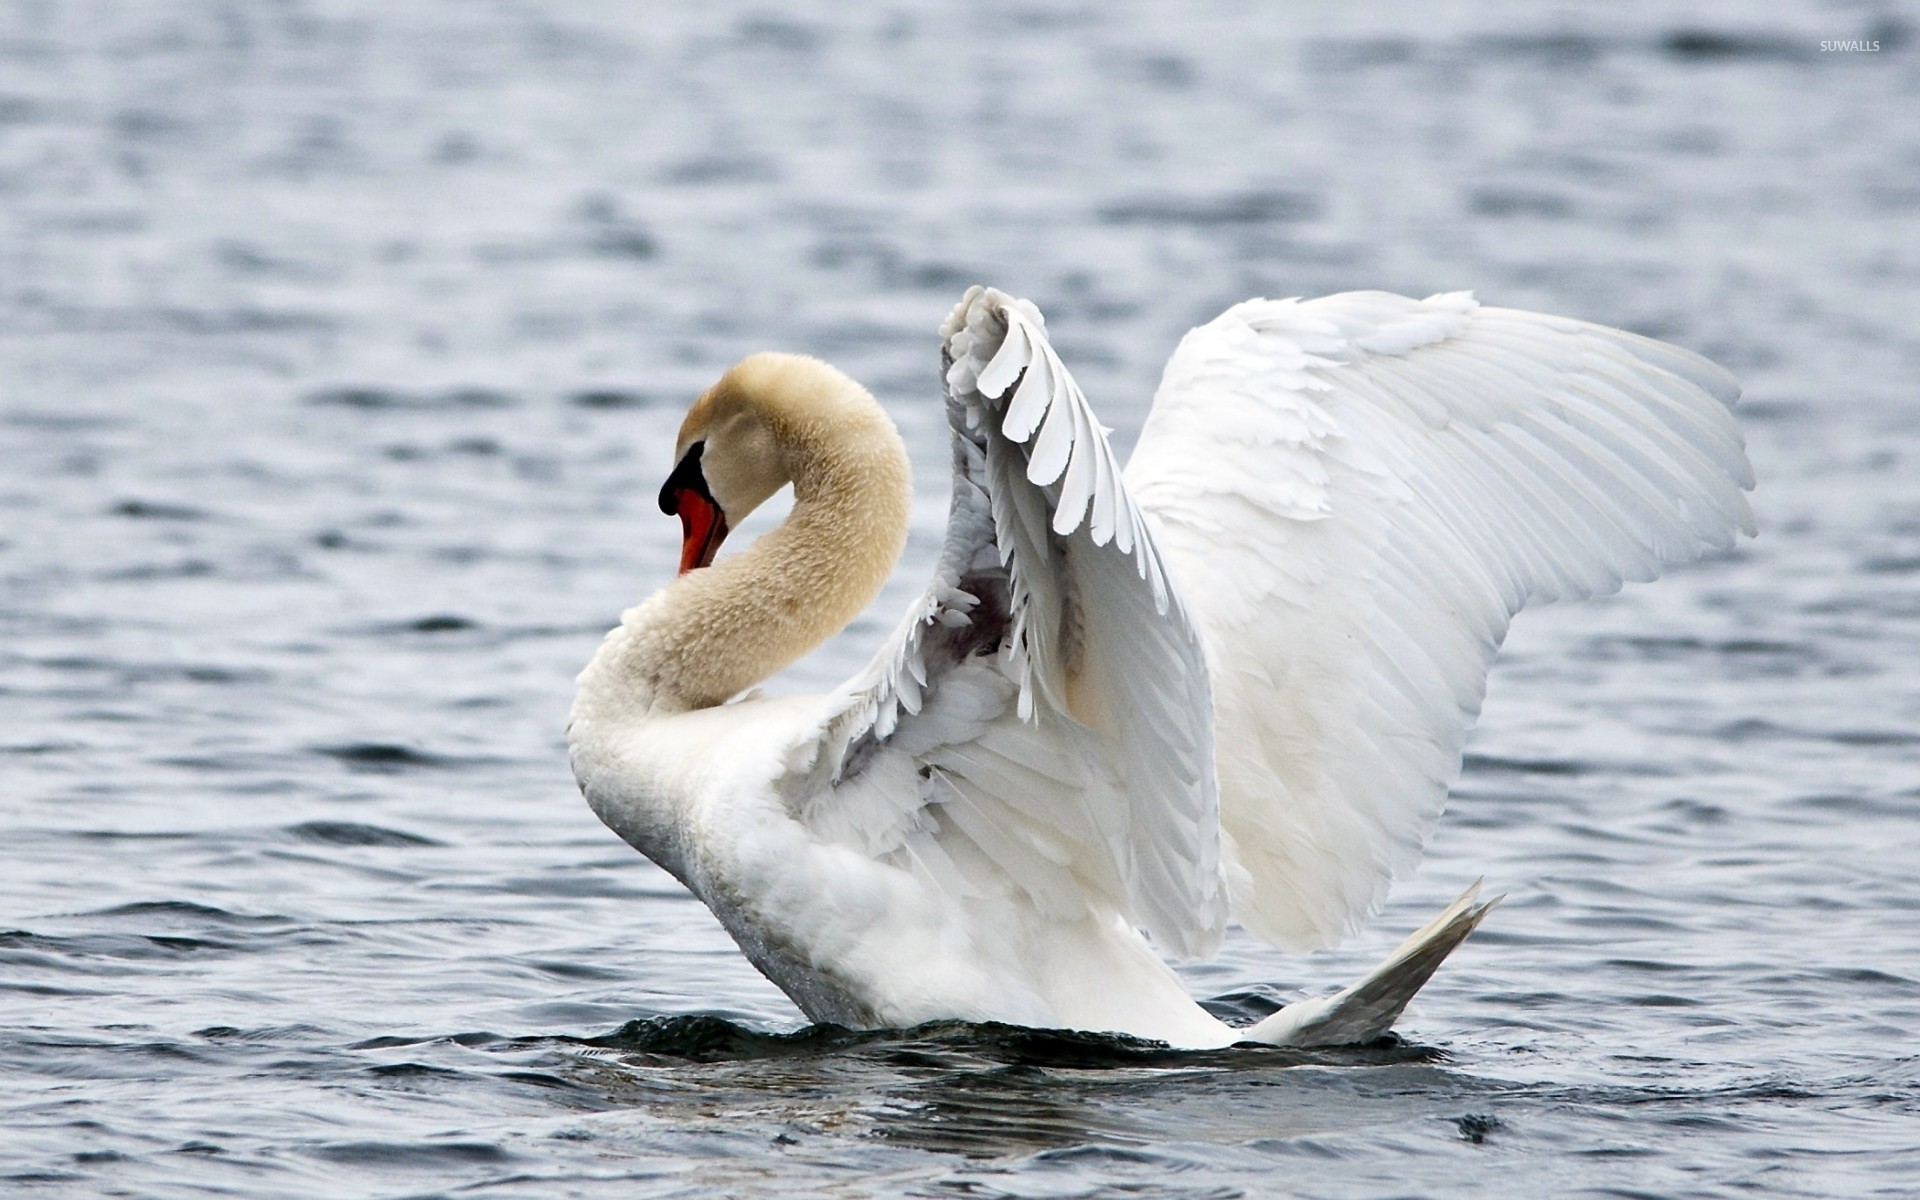 Res: 1920x1200, Swan ready to fly wallpaper